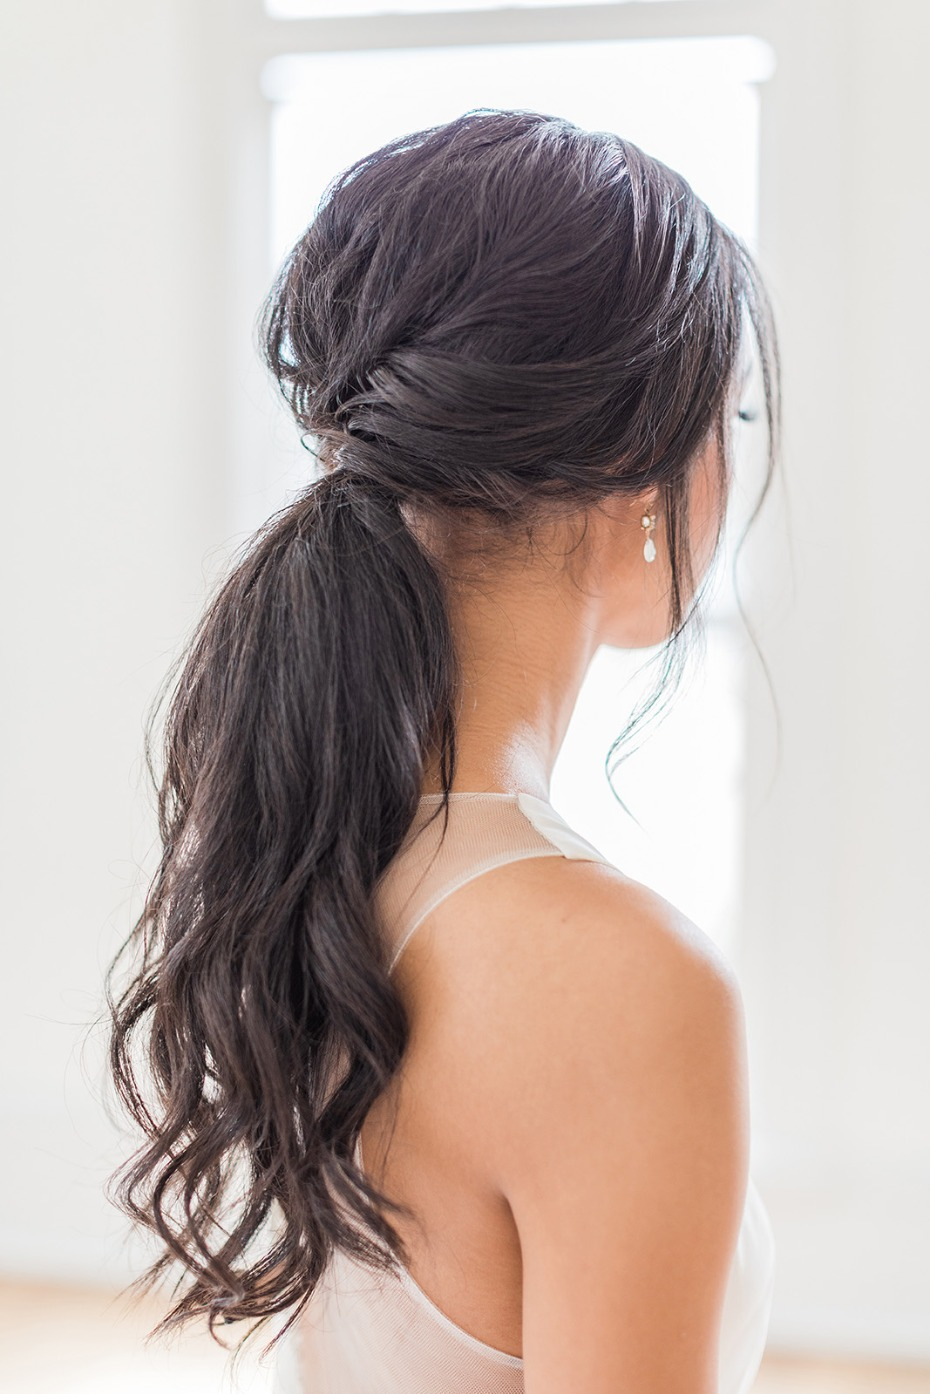 Classic Wedding Hair and Makeup Looks We're Loving